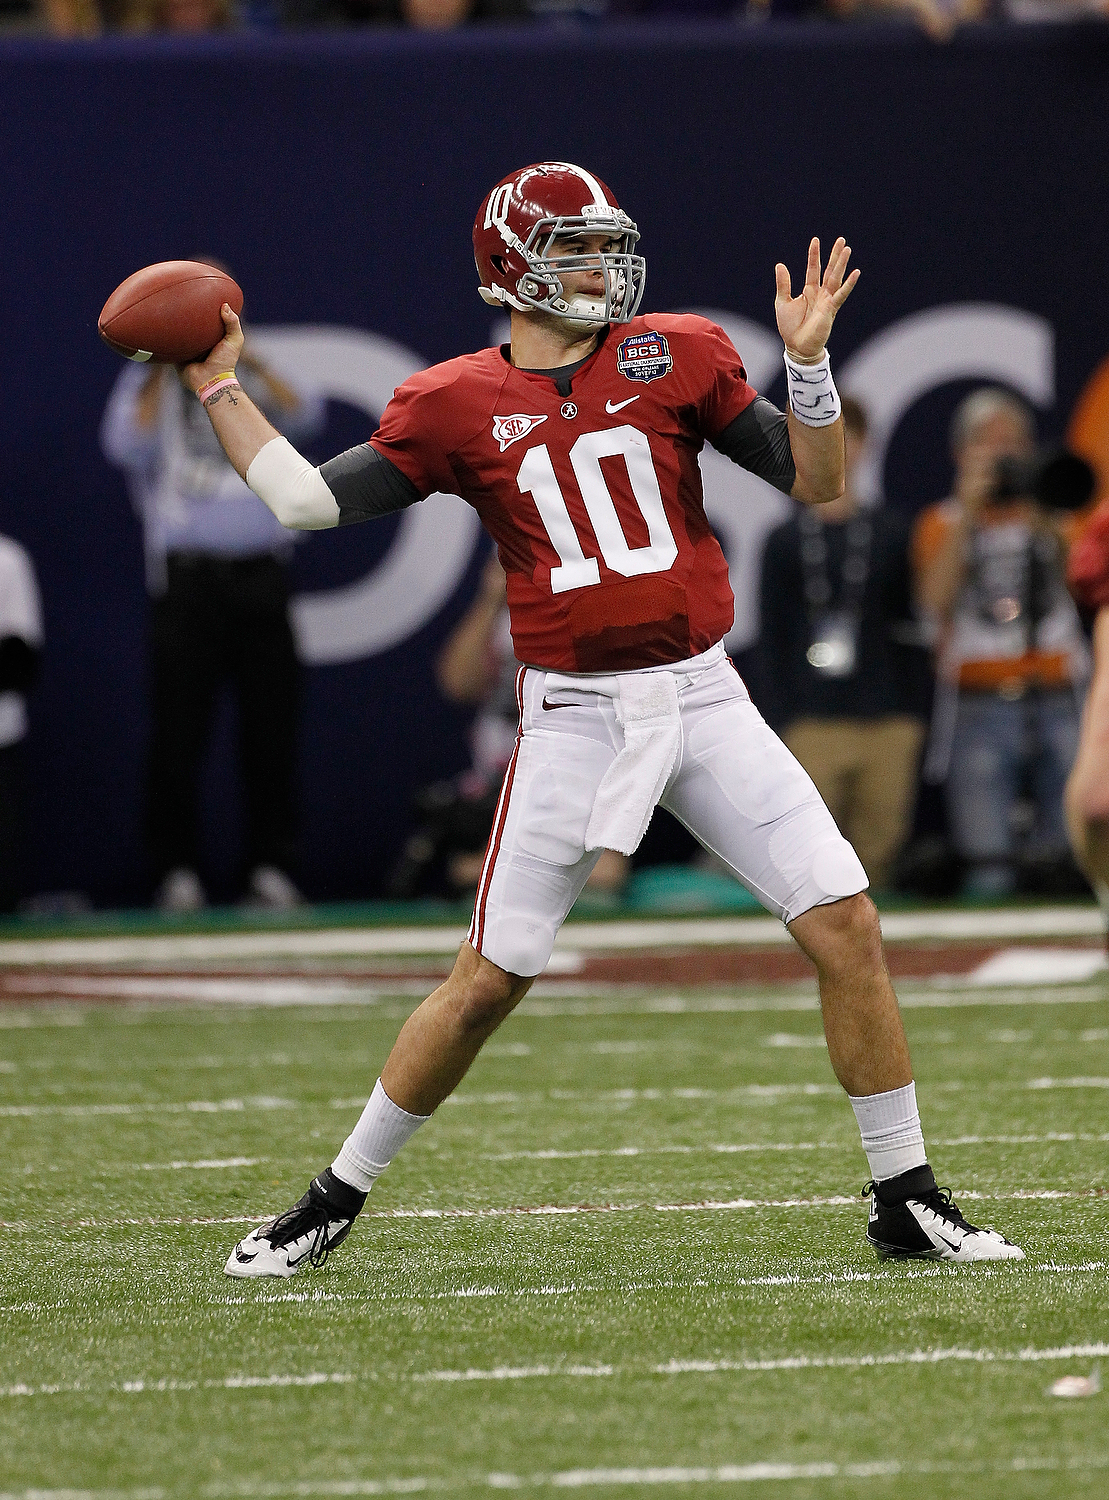 McCarron has the height (6-foot-4) and speed (clocked in the 40-yard dash at 4.75 seconds during Alabama's spring junior day) necessary for the position. He completed 67 percent of his passes in 2012 for 30 touchdowns and just three interceptions. This guy is a winner. (AP Photo/Dave Martin)